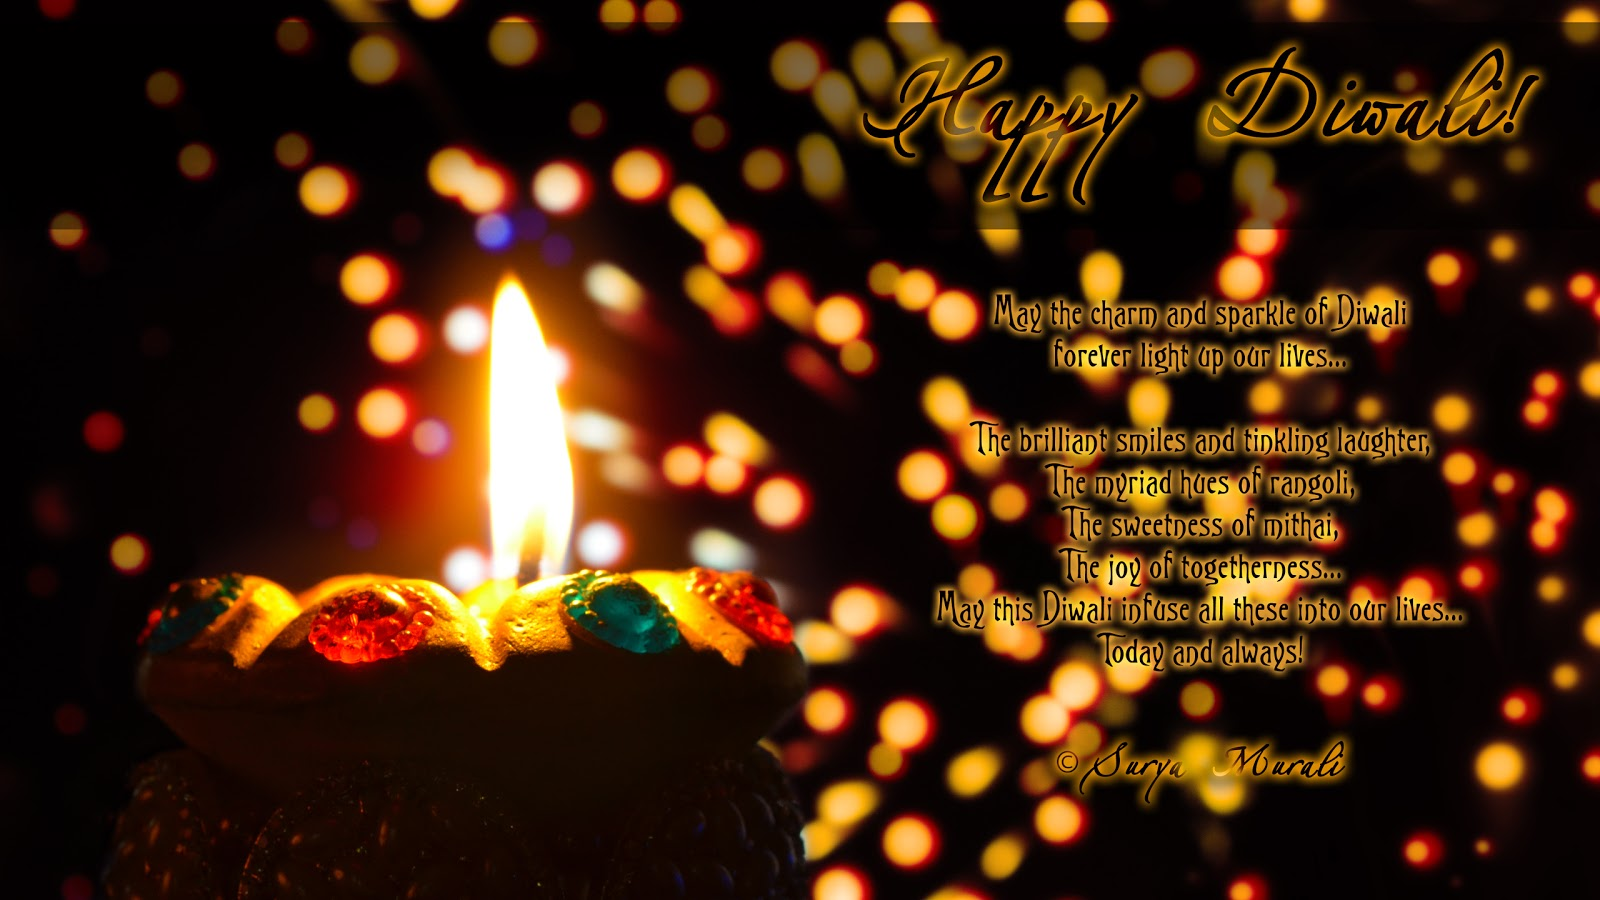 Happy Diwali Wishes Hindi Font